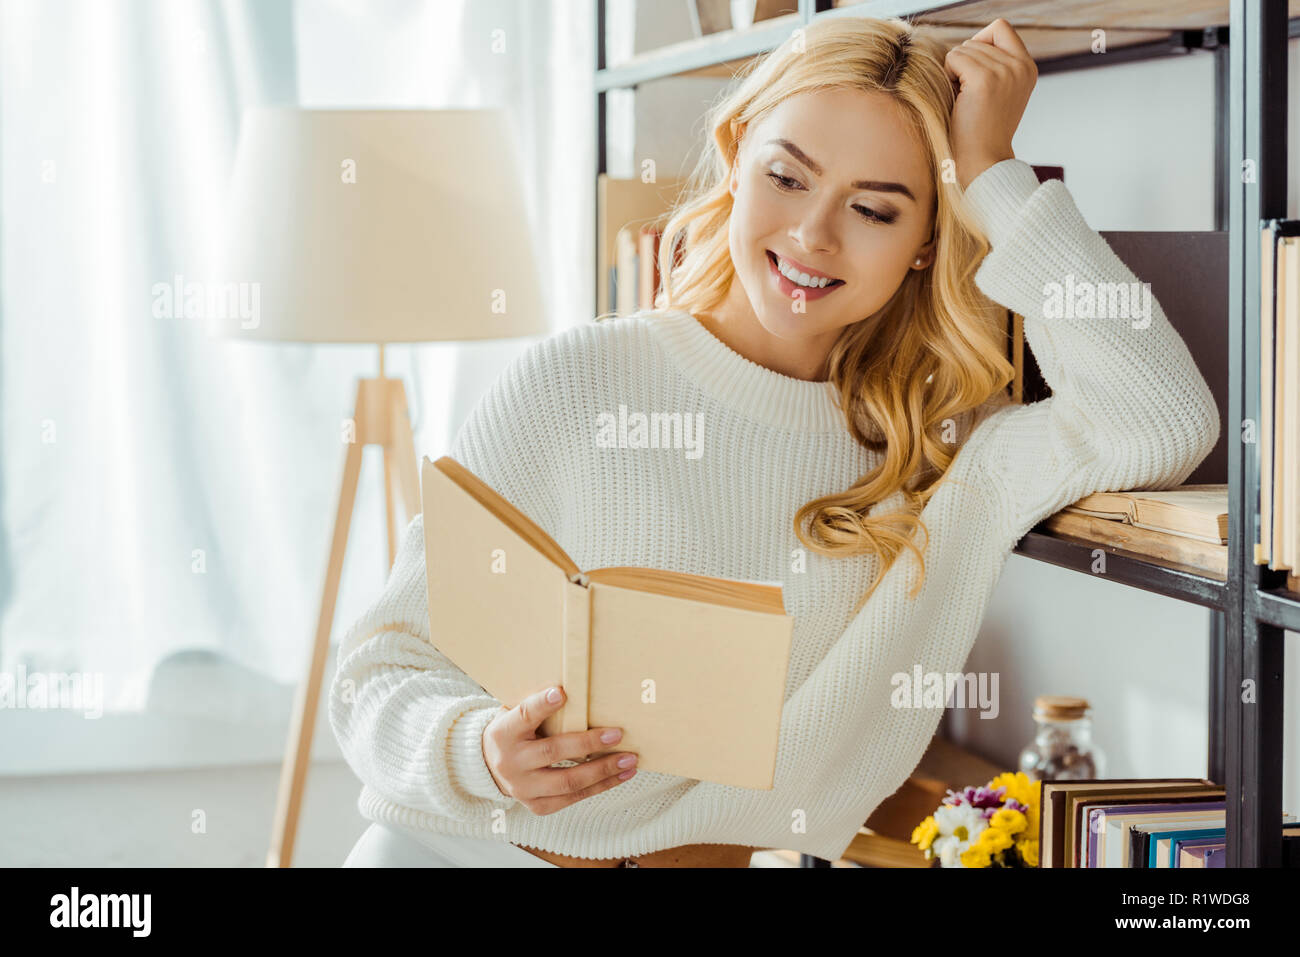 close up of beautiful smiling woman reading book near rack - Stock Image